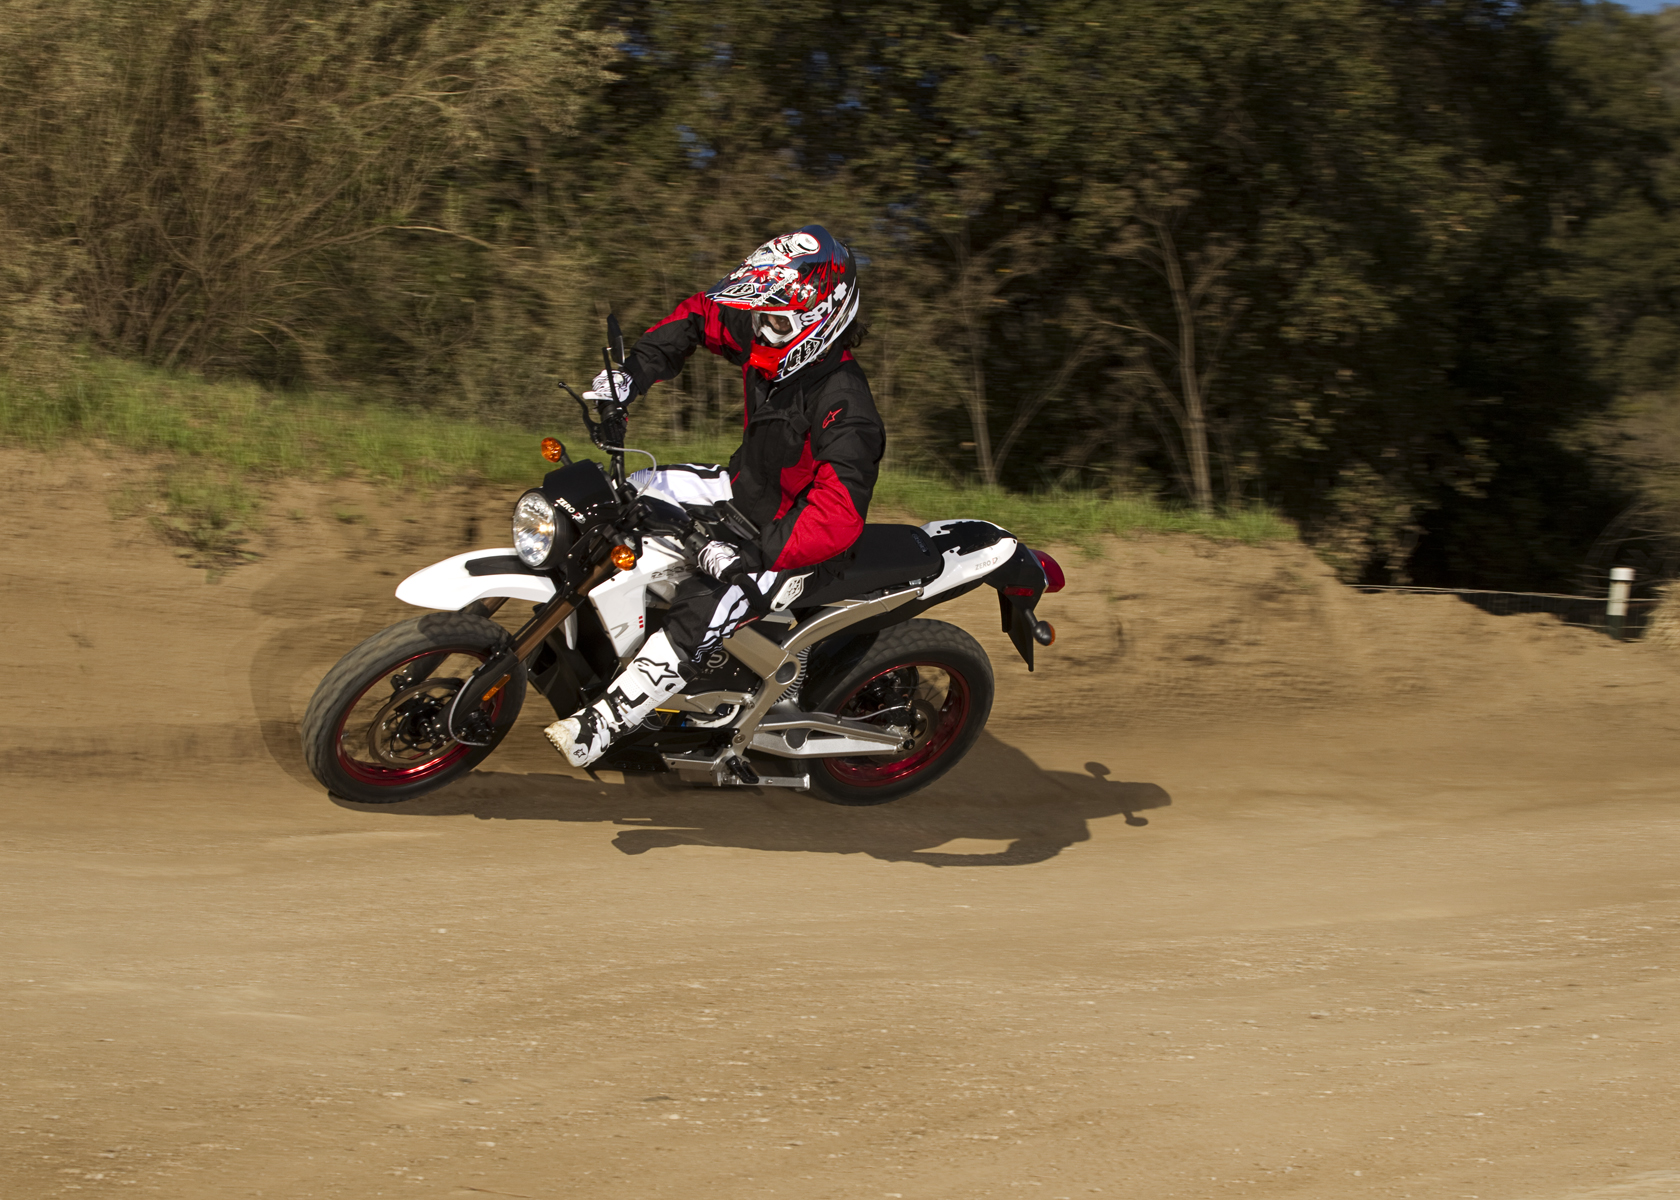 '.2011 Zero DS Electric Motorcycle: Dirt Road, Corner.'